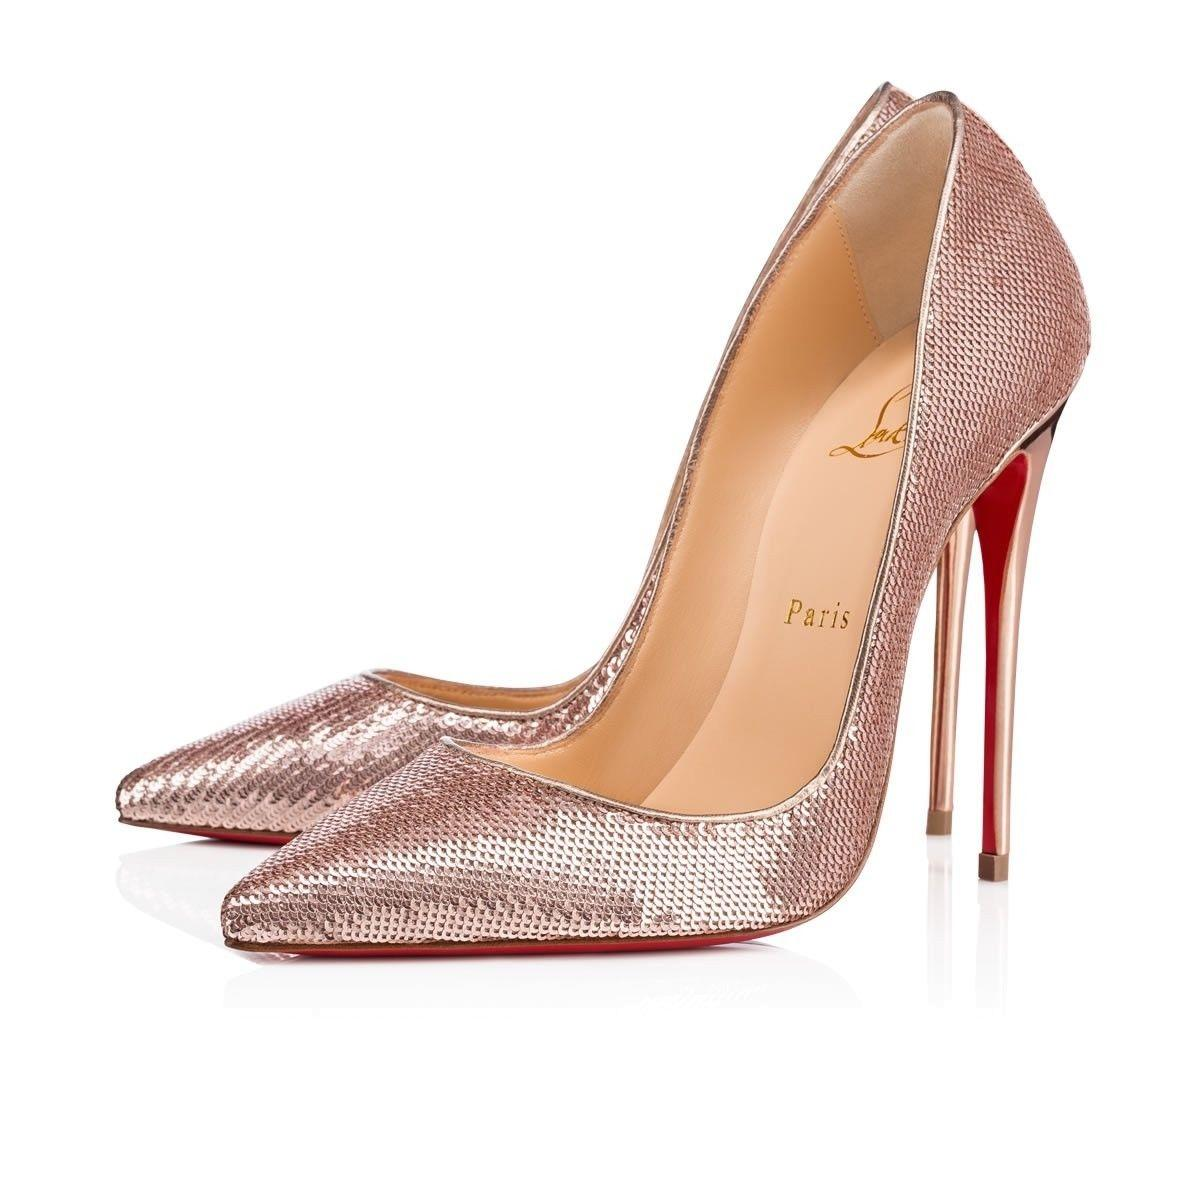 a4f0580acf4a ... discount code for christian louboutin sokate kate pigalle stiletto  patent nude pumps f3108 45fb5